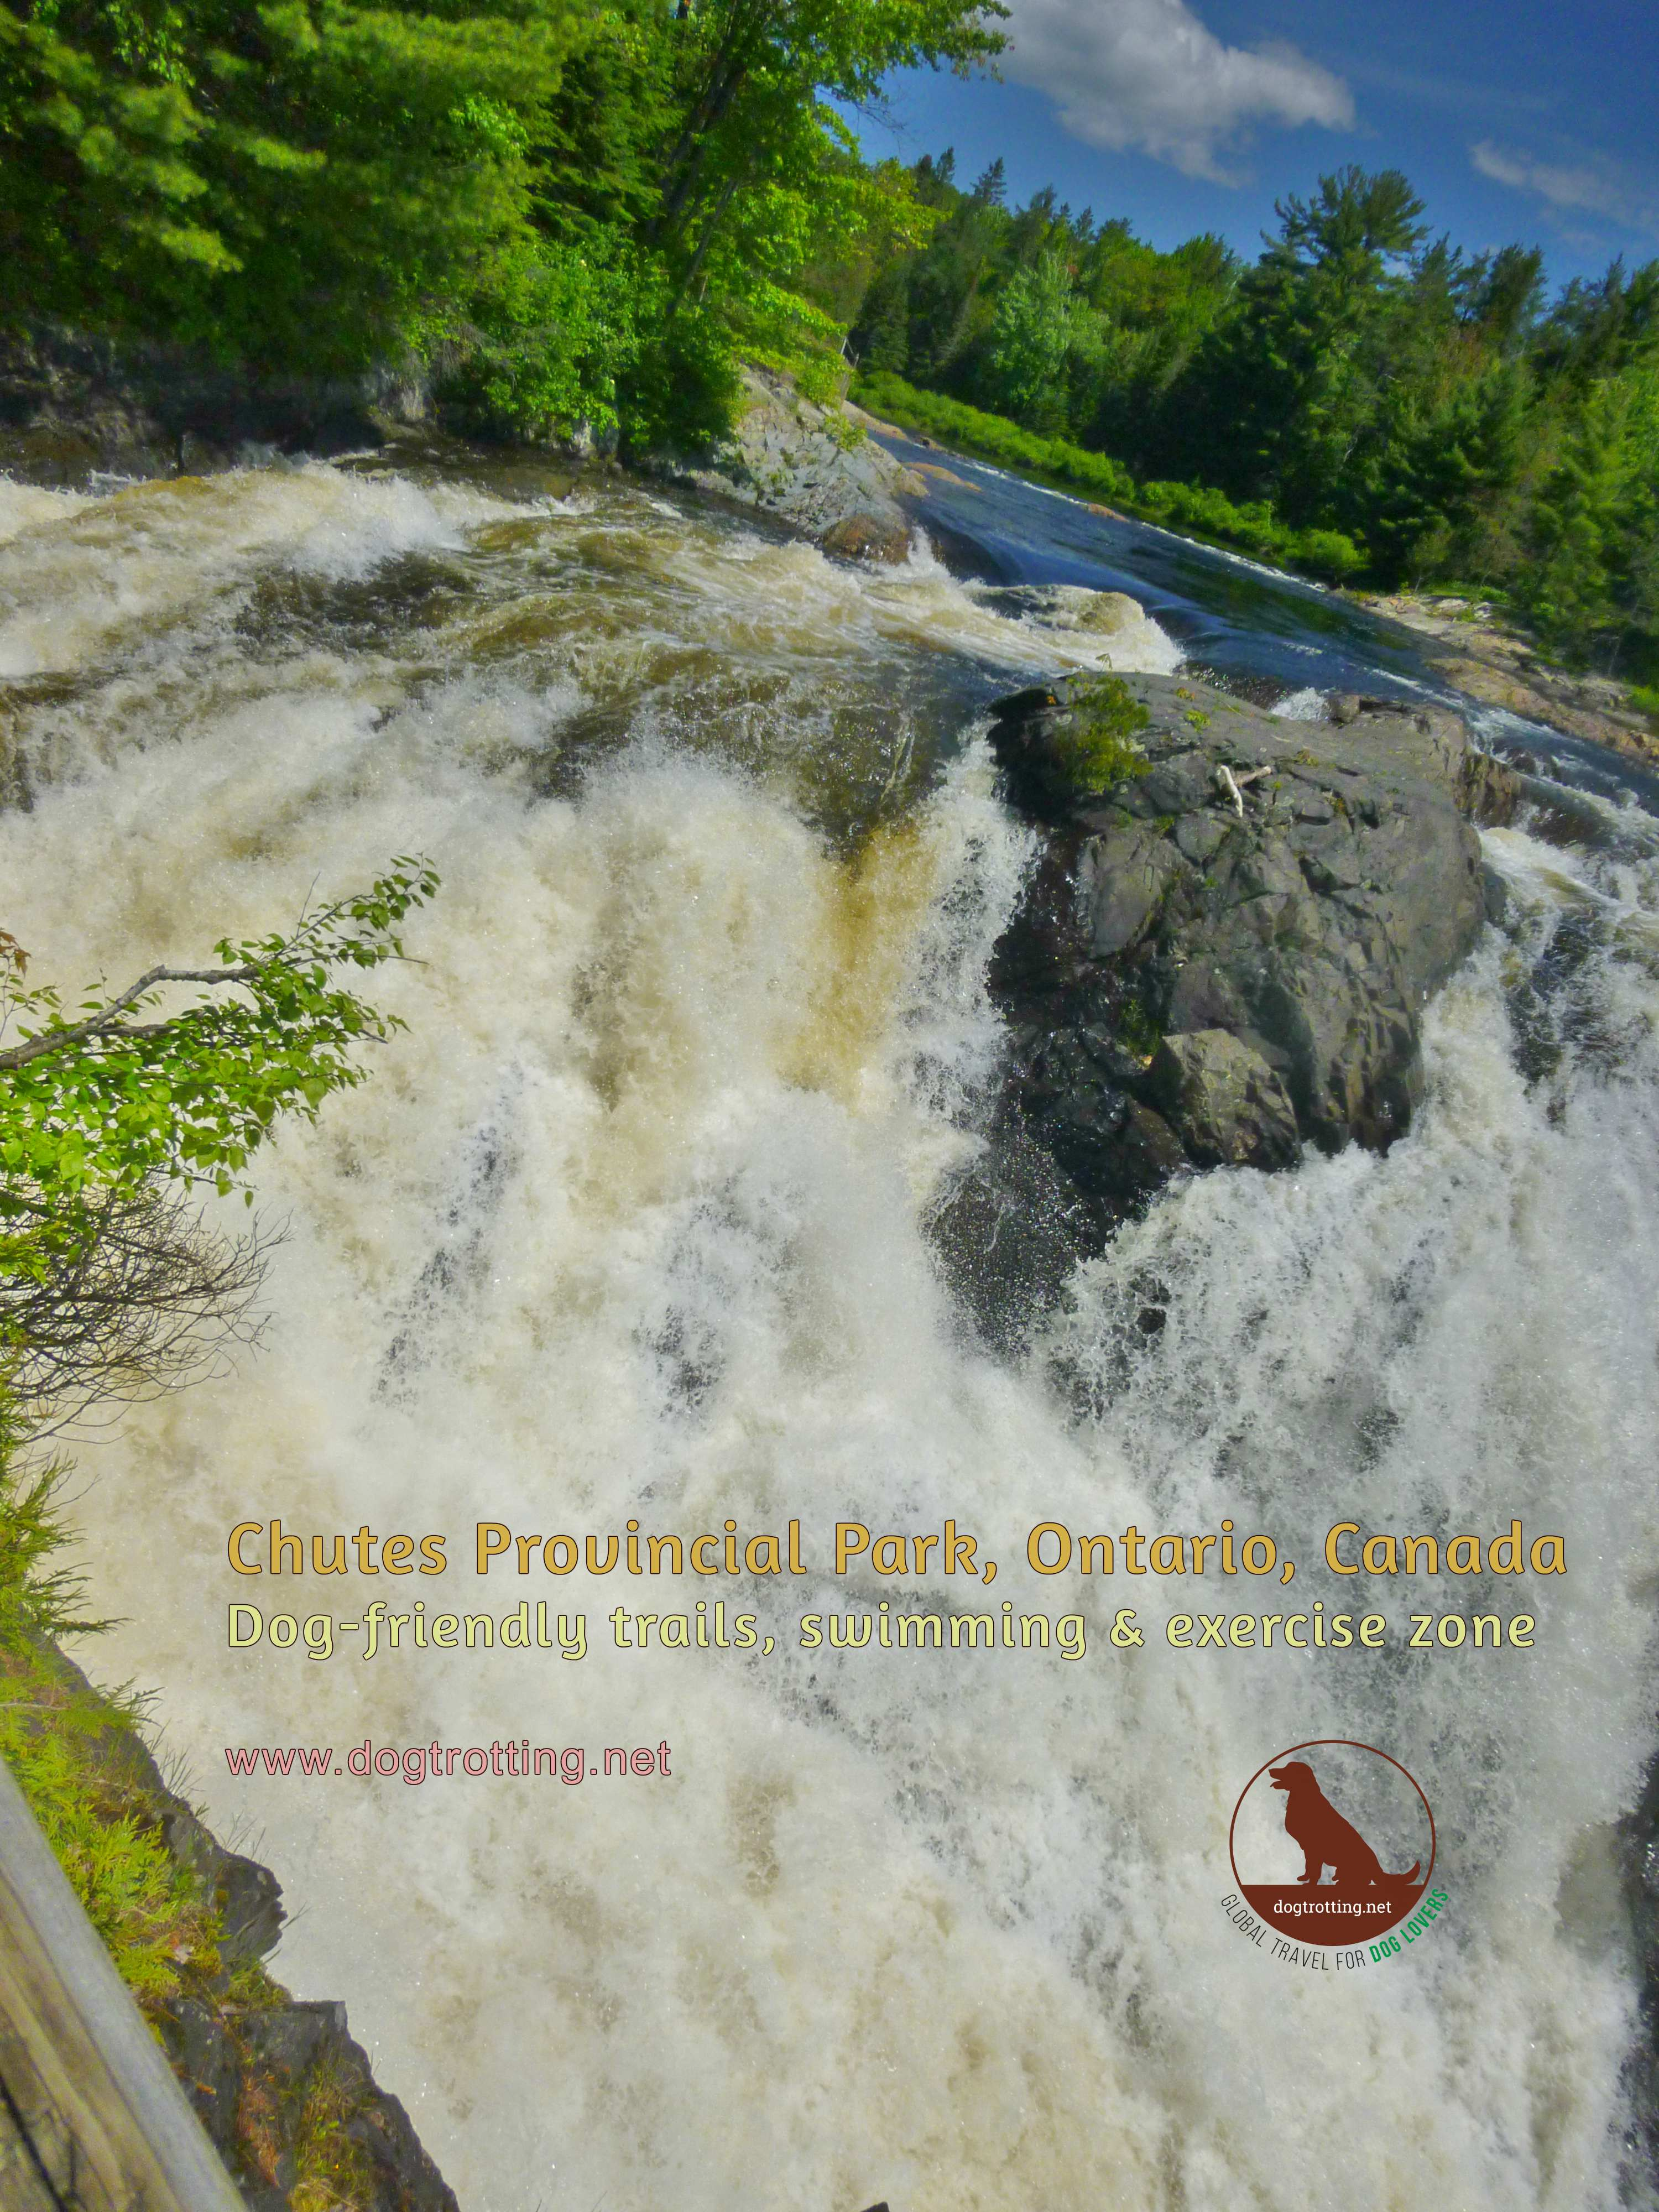 Summer of Parks Ontario: Chasing Waterfalls at Chutes Provincial Park (with the dog) … plus free park day!